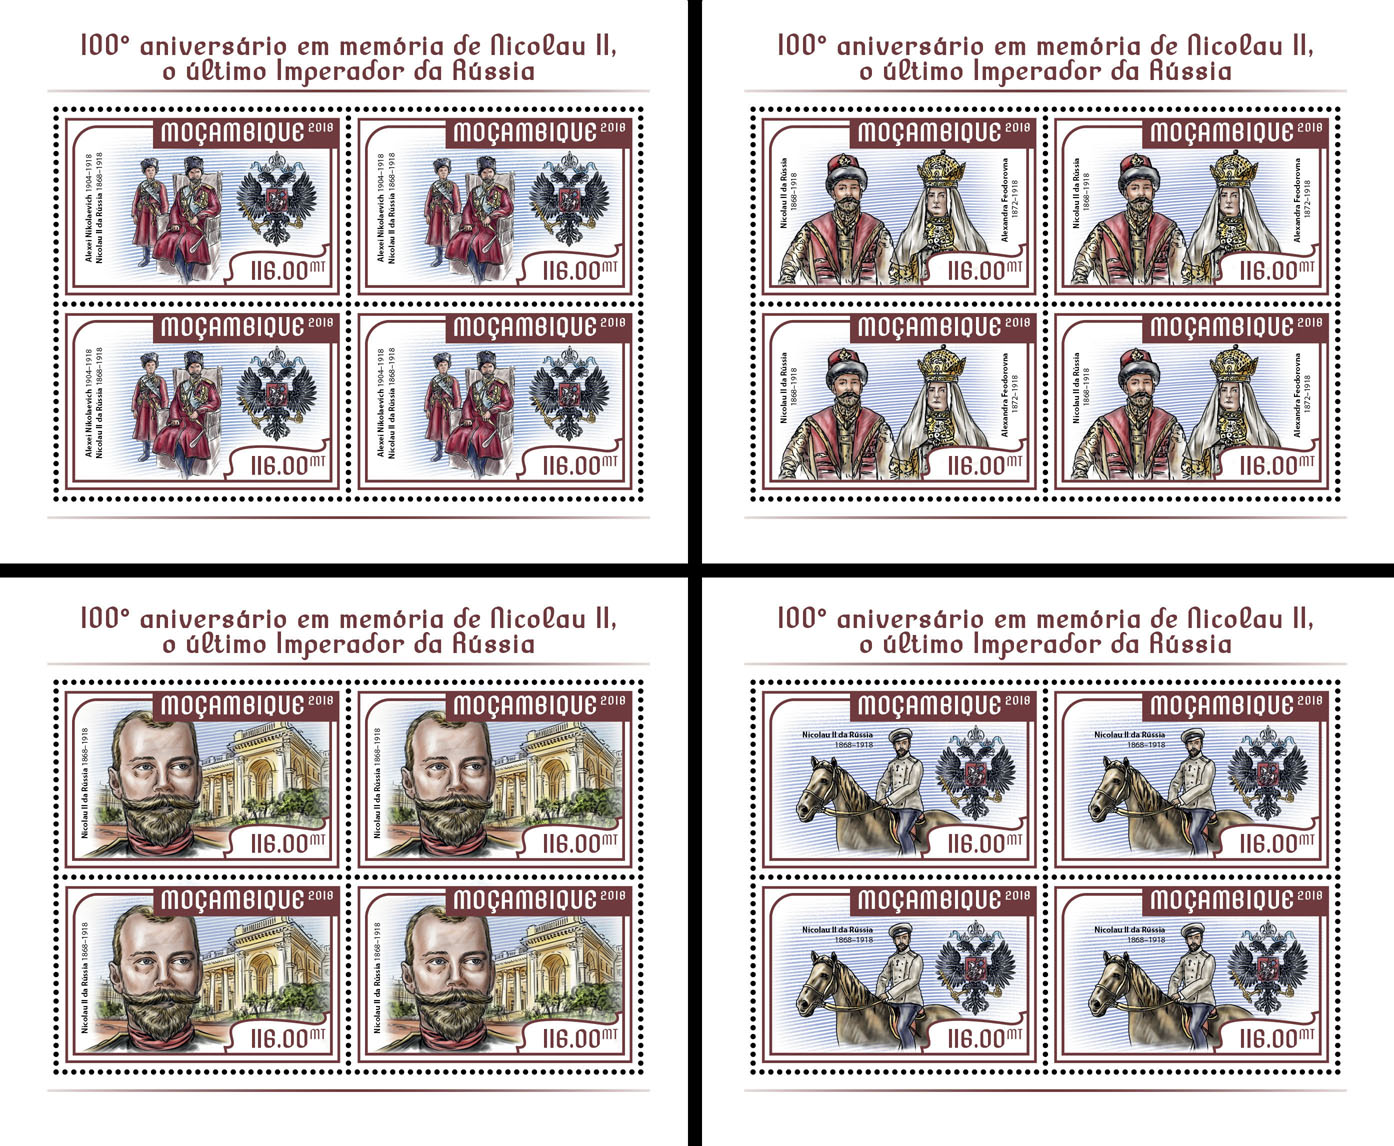 Nicholas II (4 sets of 4 stamps) - Issue of Mozambique postage Stamps